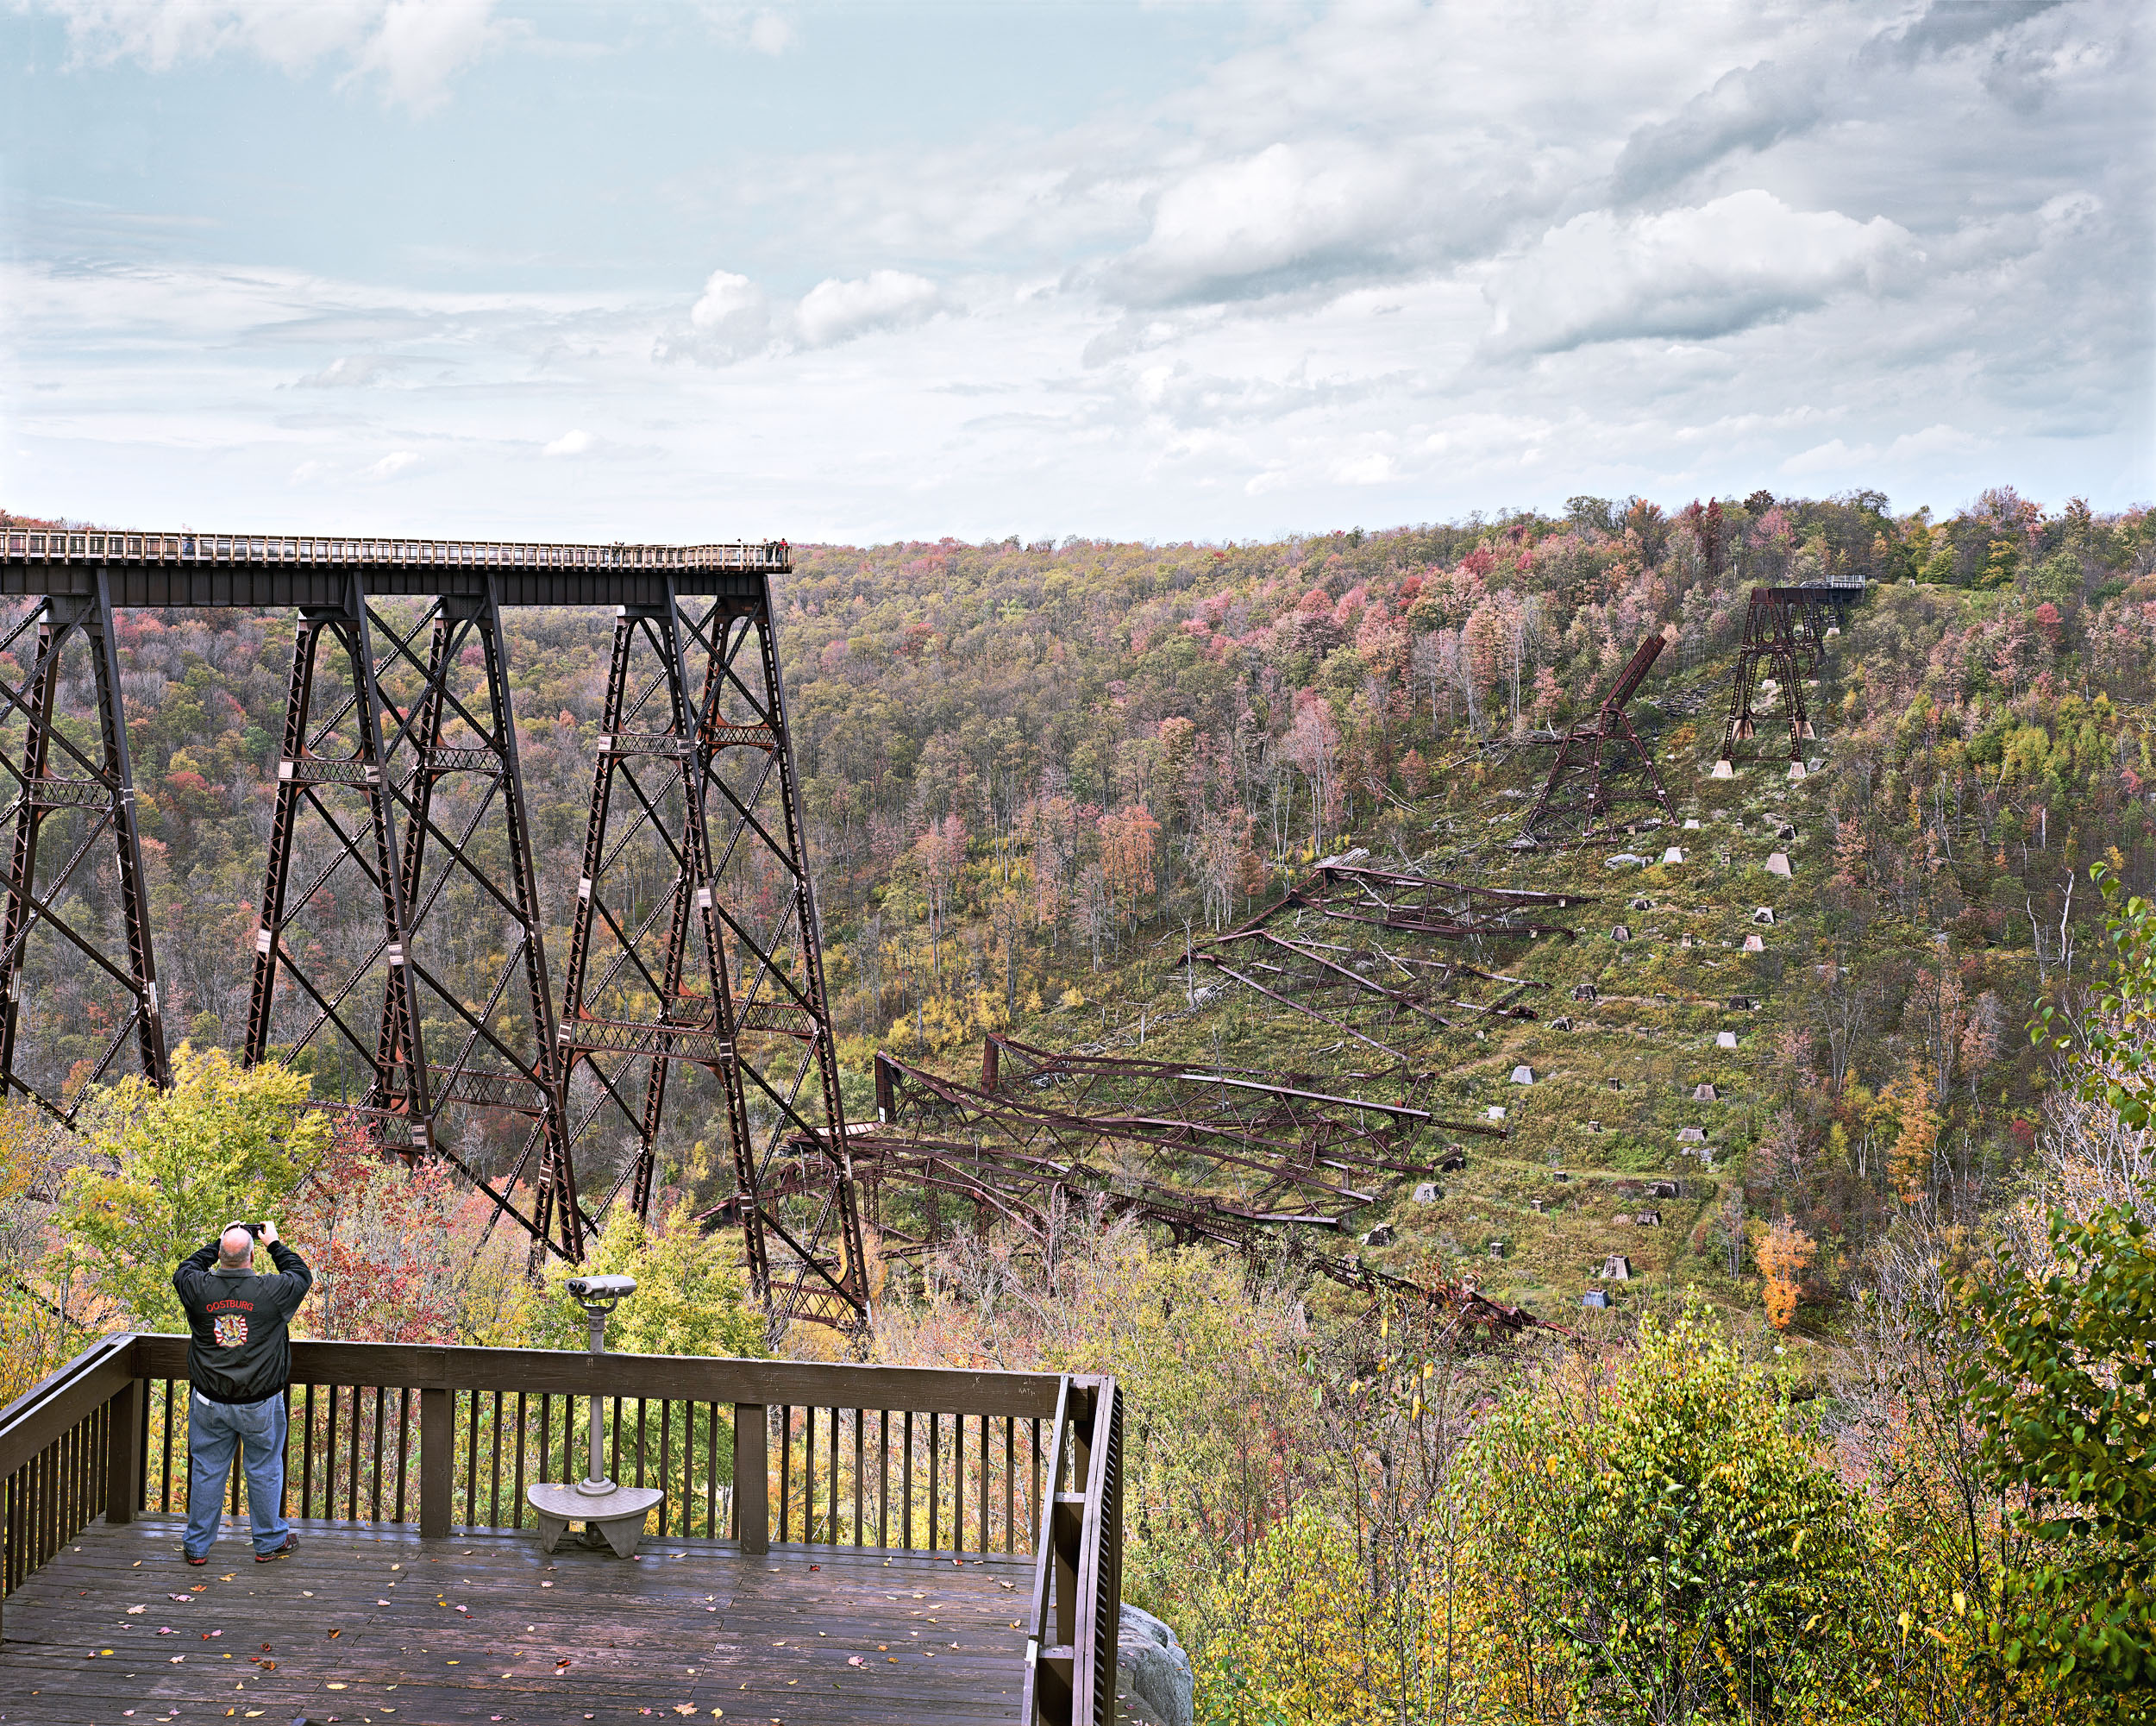 Kinzua Viaduct, McKean County, Pennsylvania